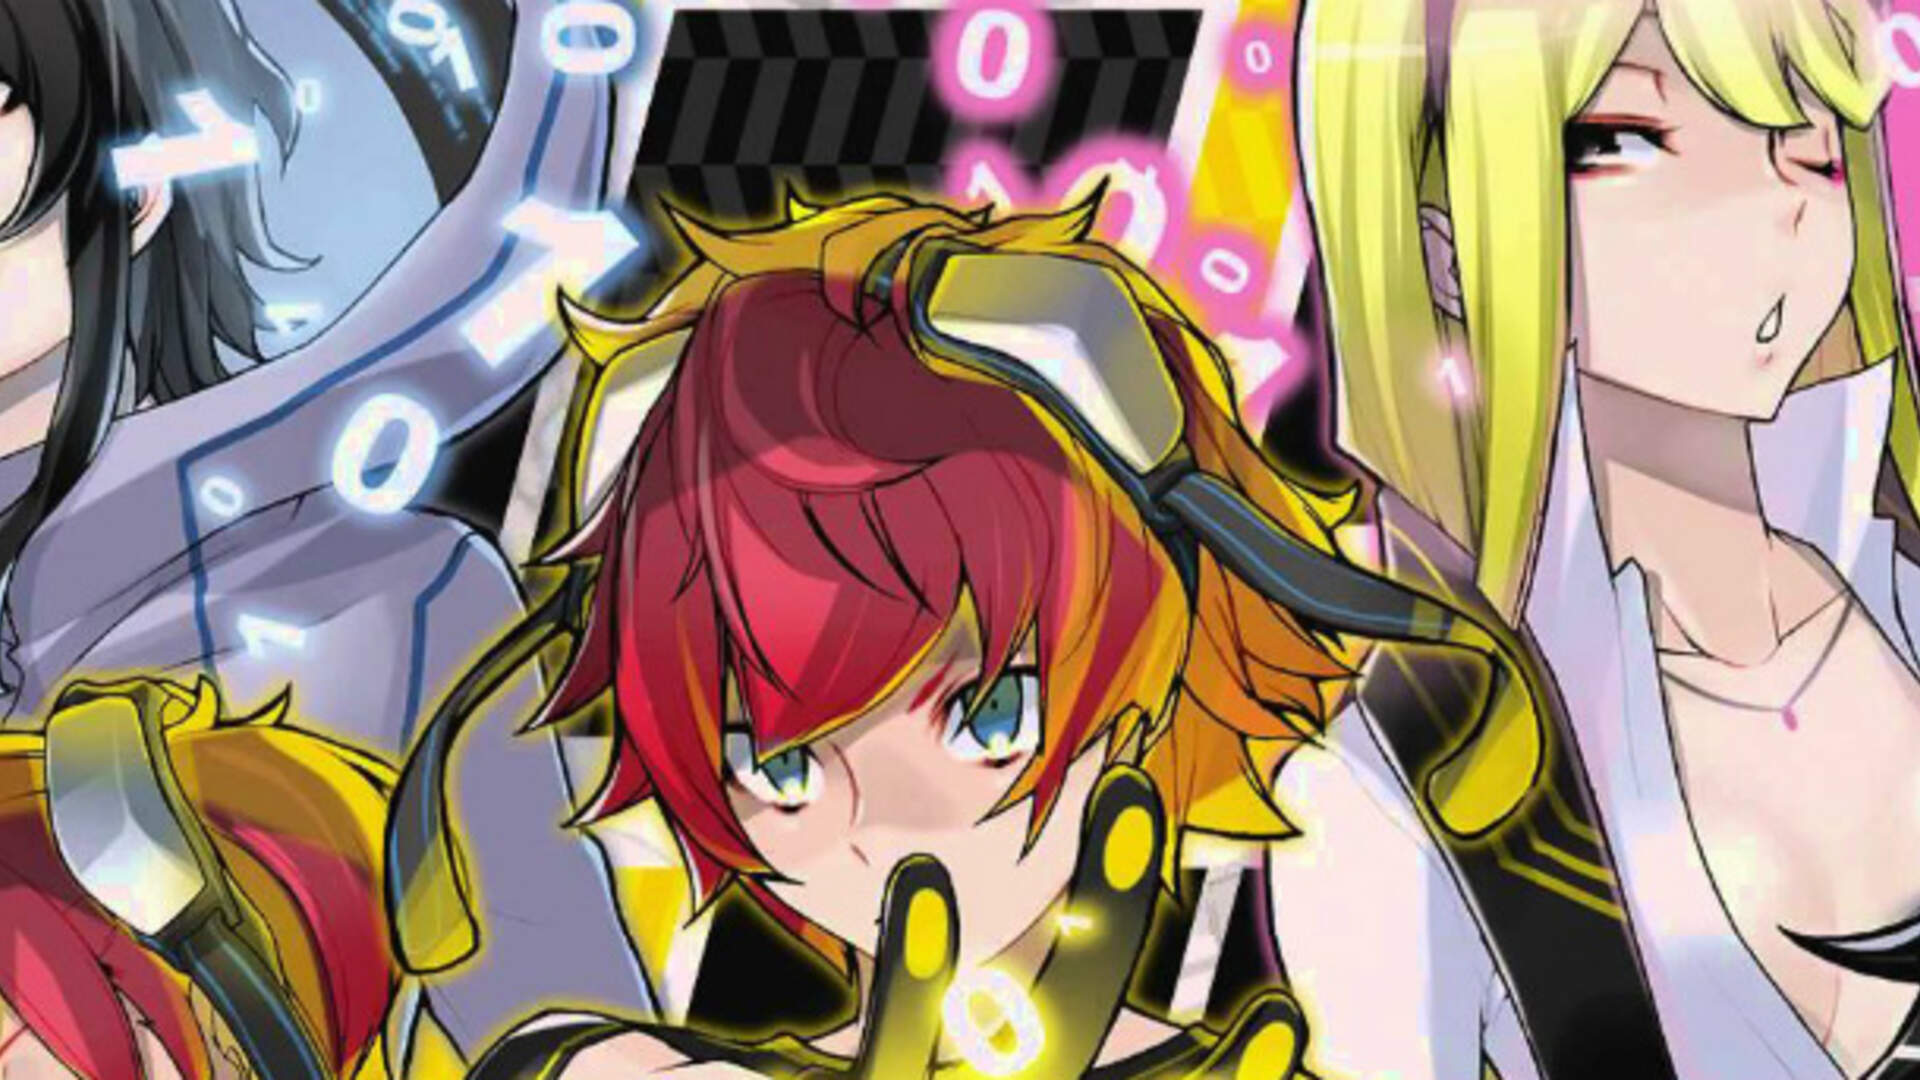 Digimon Story Cyber Sleuth Gets a New Entry on PS4 and Vita